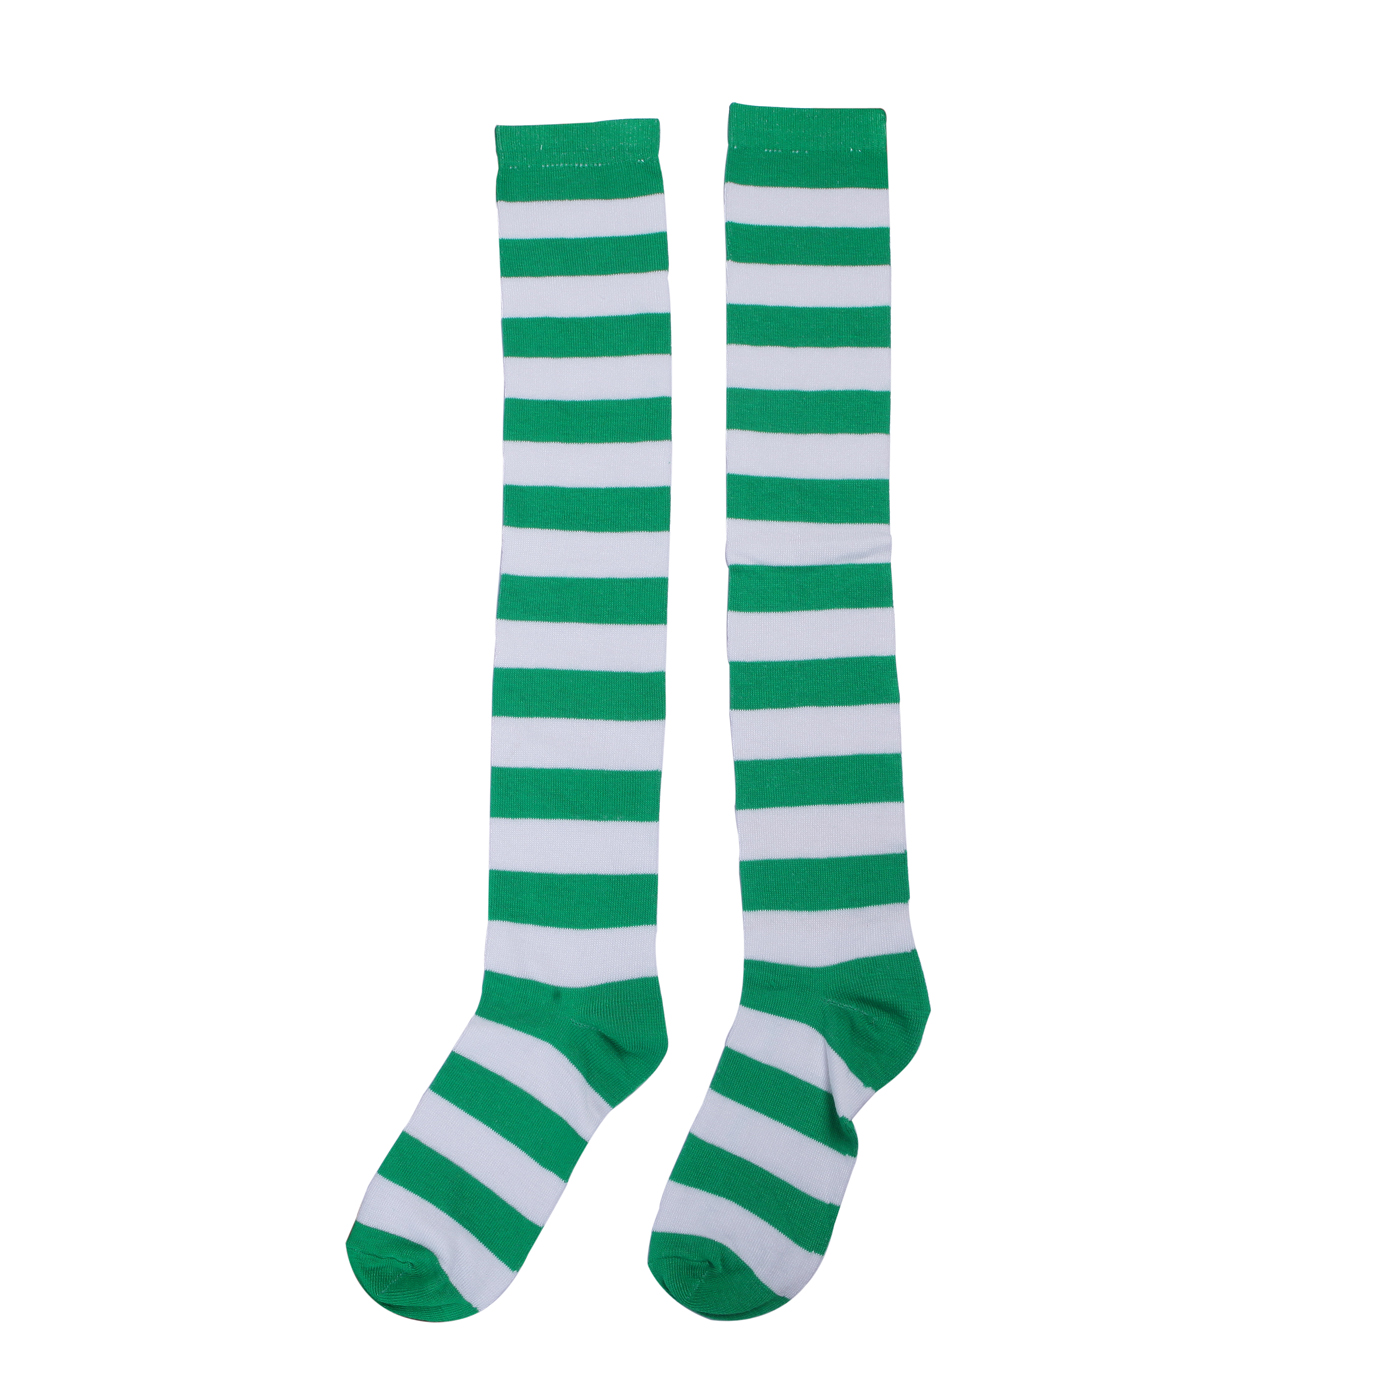 6d4b4d37668 Green   white stripe socks – Code  6927